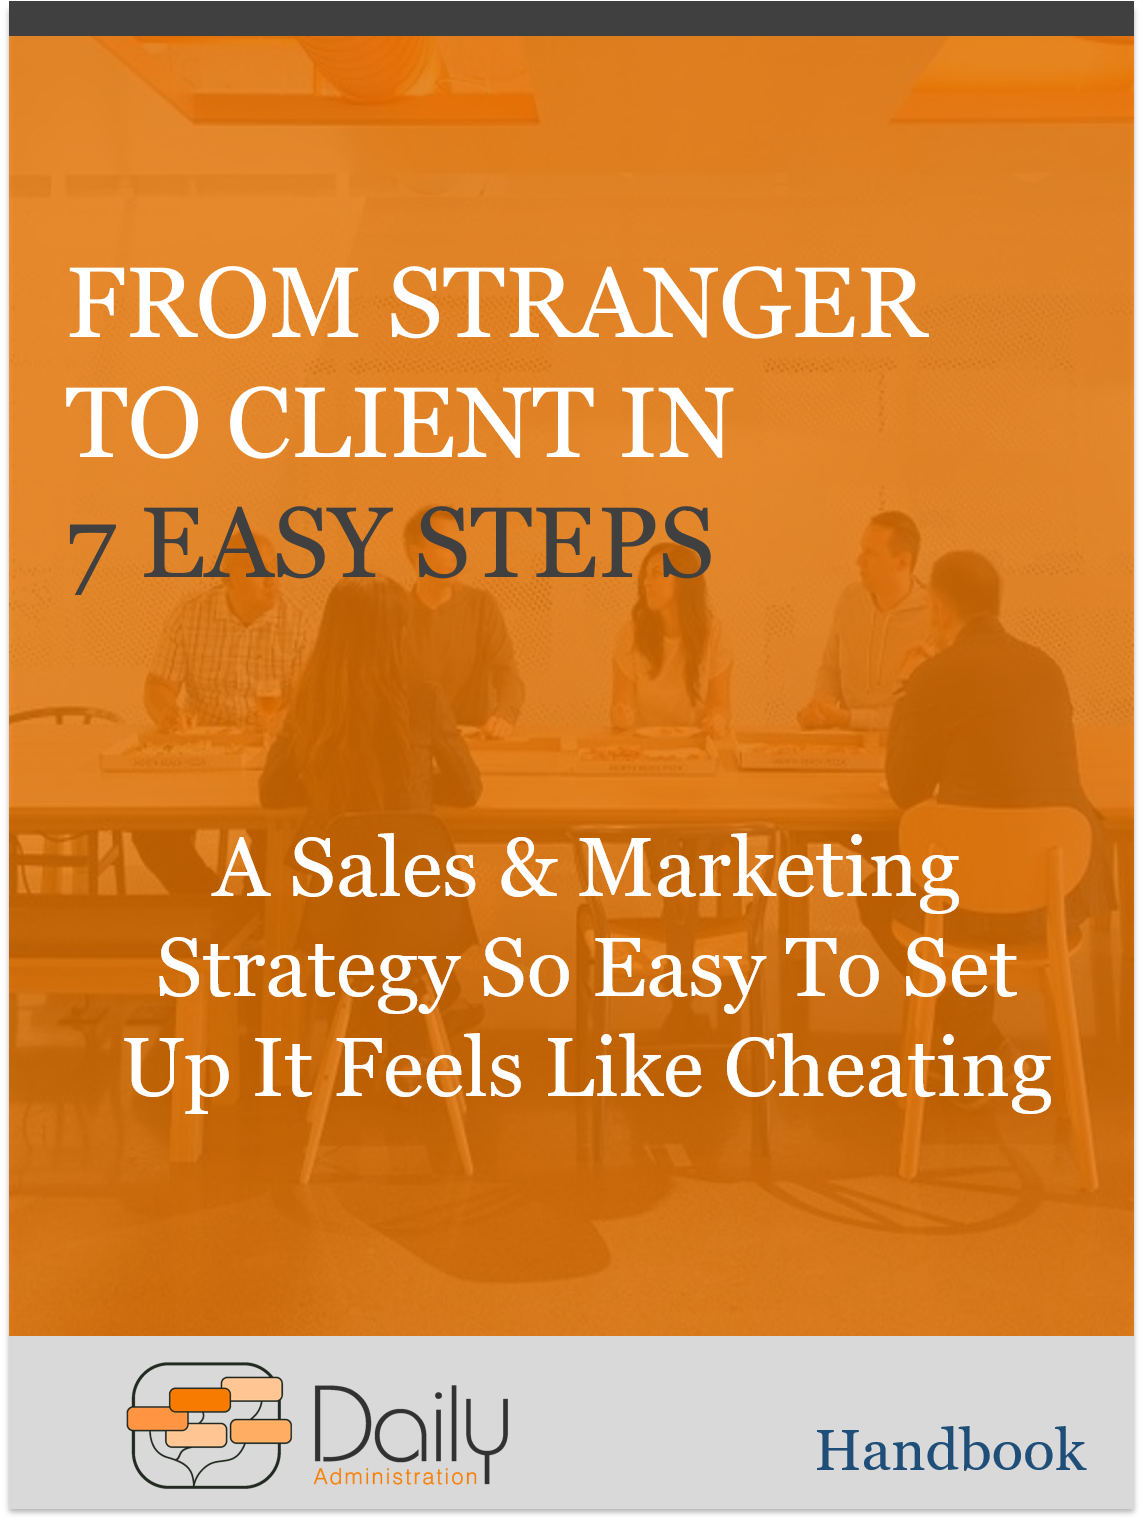 Image of Stranger to Client Handbook